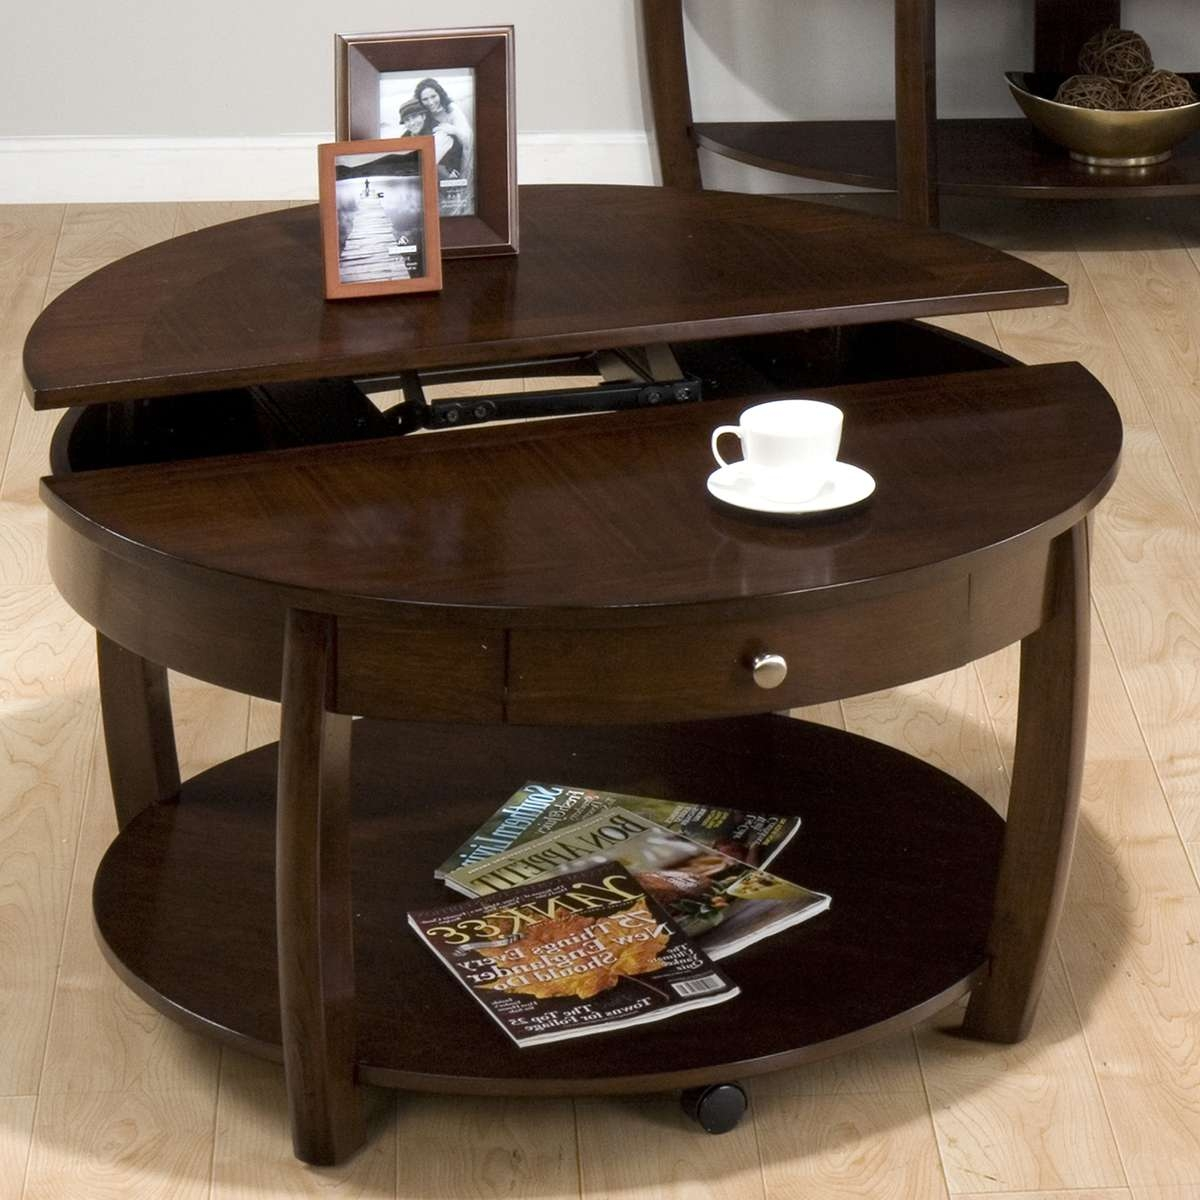 Coffee Tables Ideas: Coffee Table With Lift Top And Storage Lift Within Favorite Lift Top Coffee Tables With Storage (View 7 of 20)